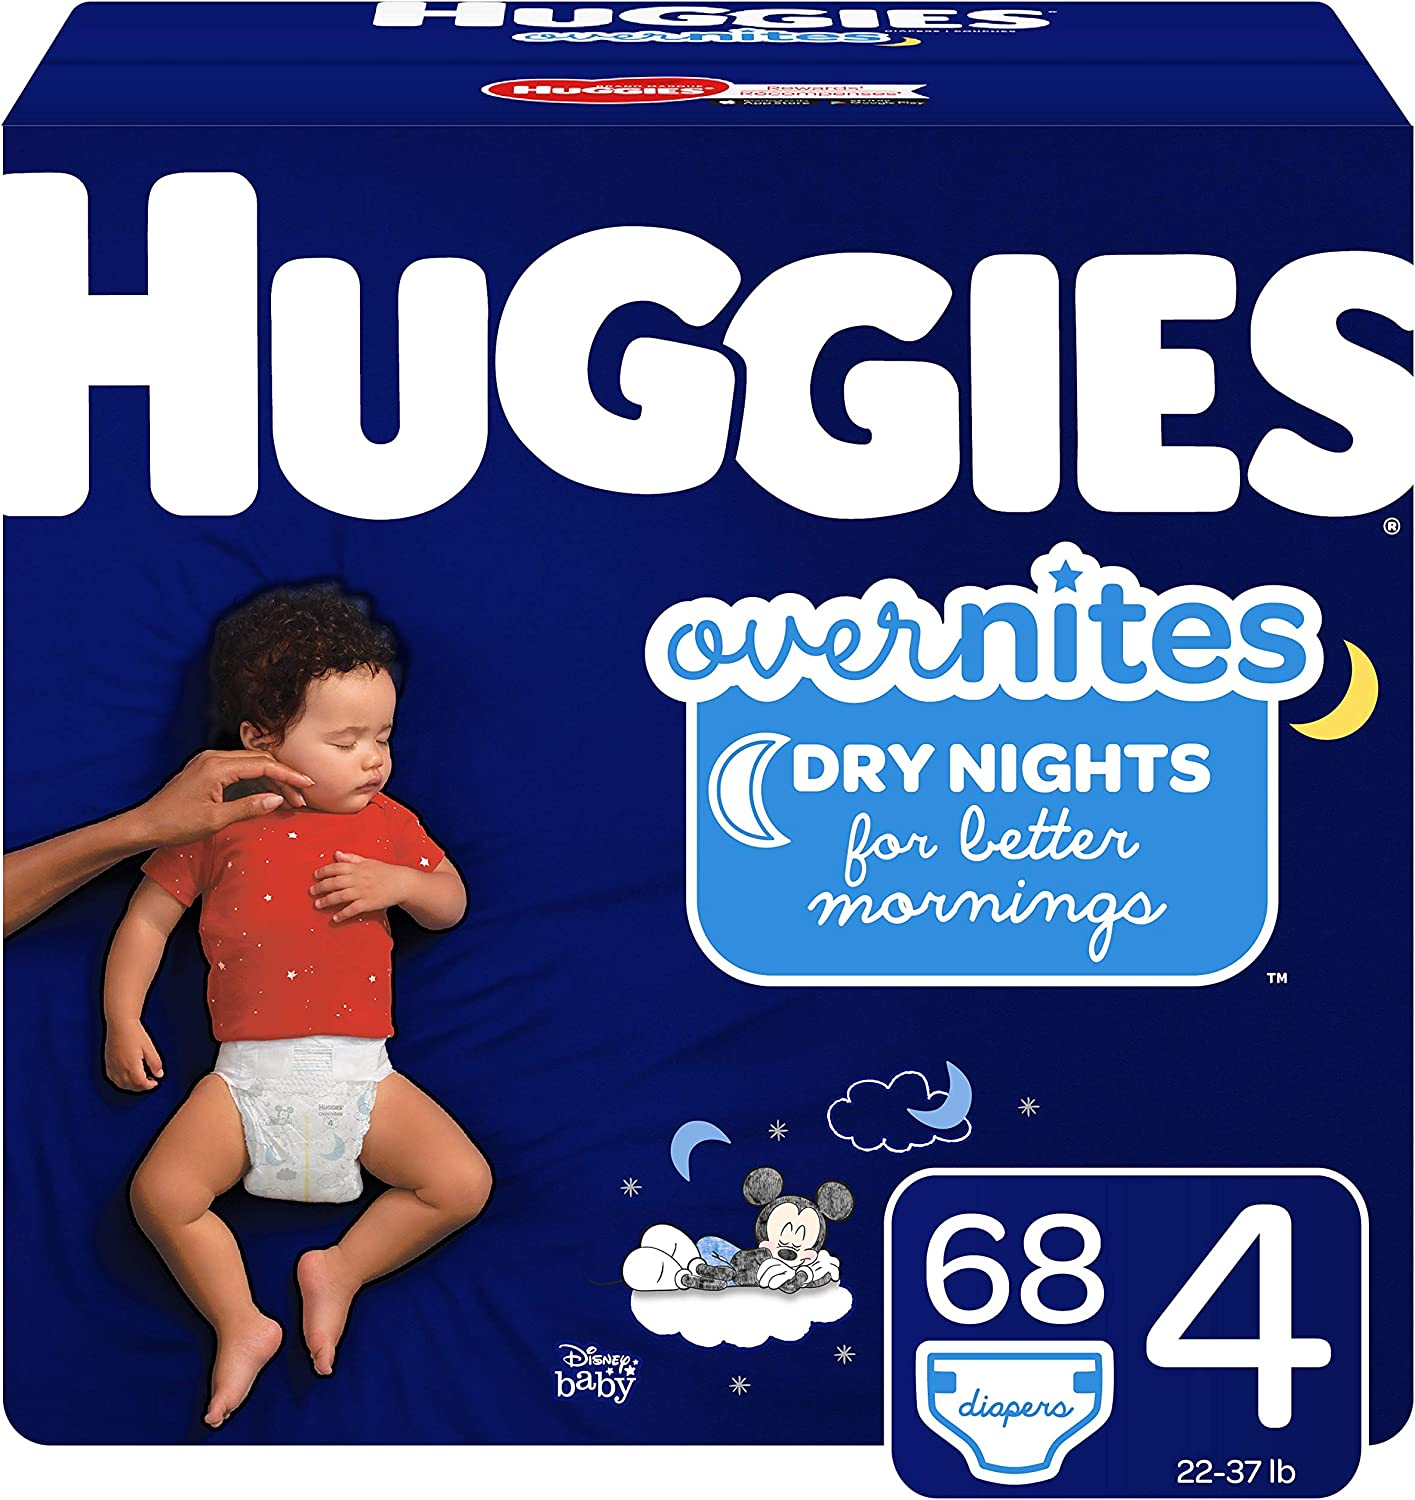 Max 84% OFF Huggies Overnites Nighttime Sale Diapers Size Ct 68 4